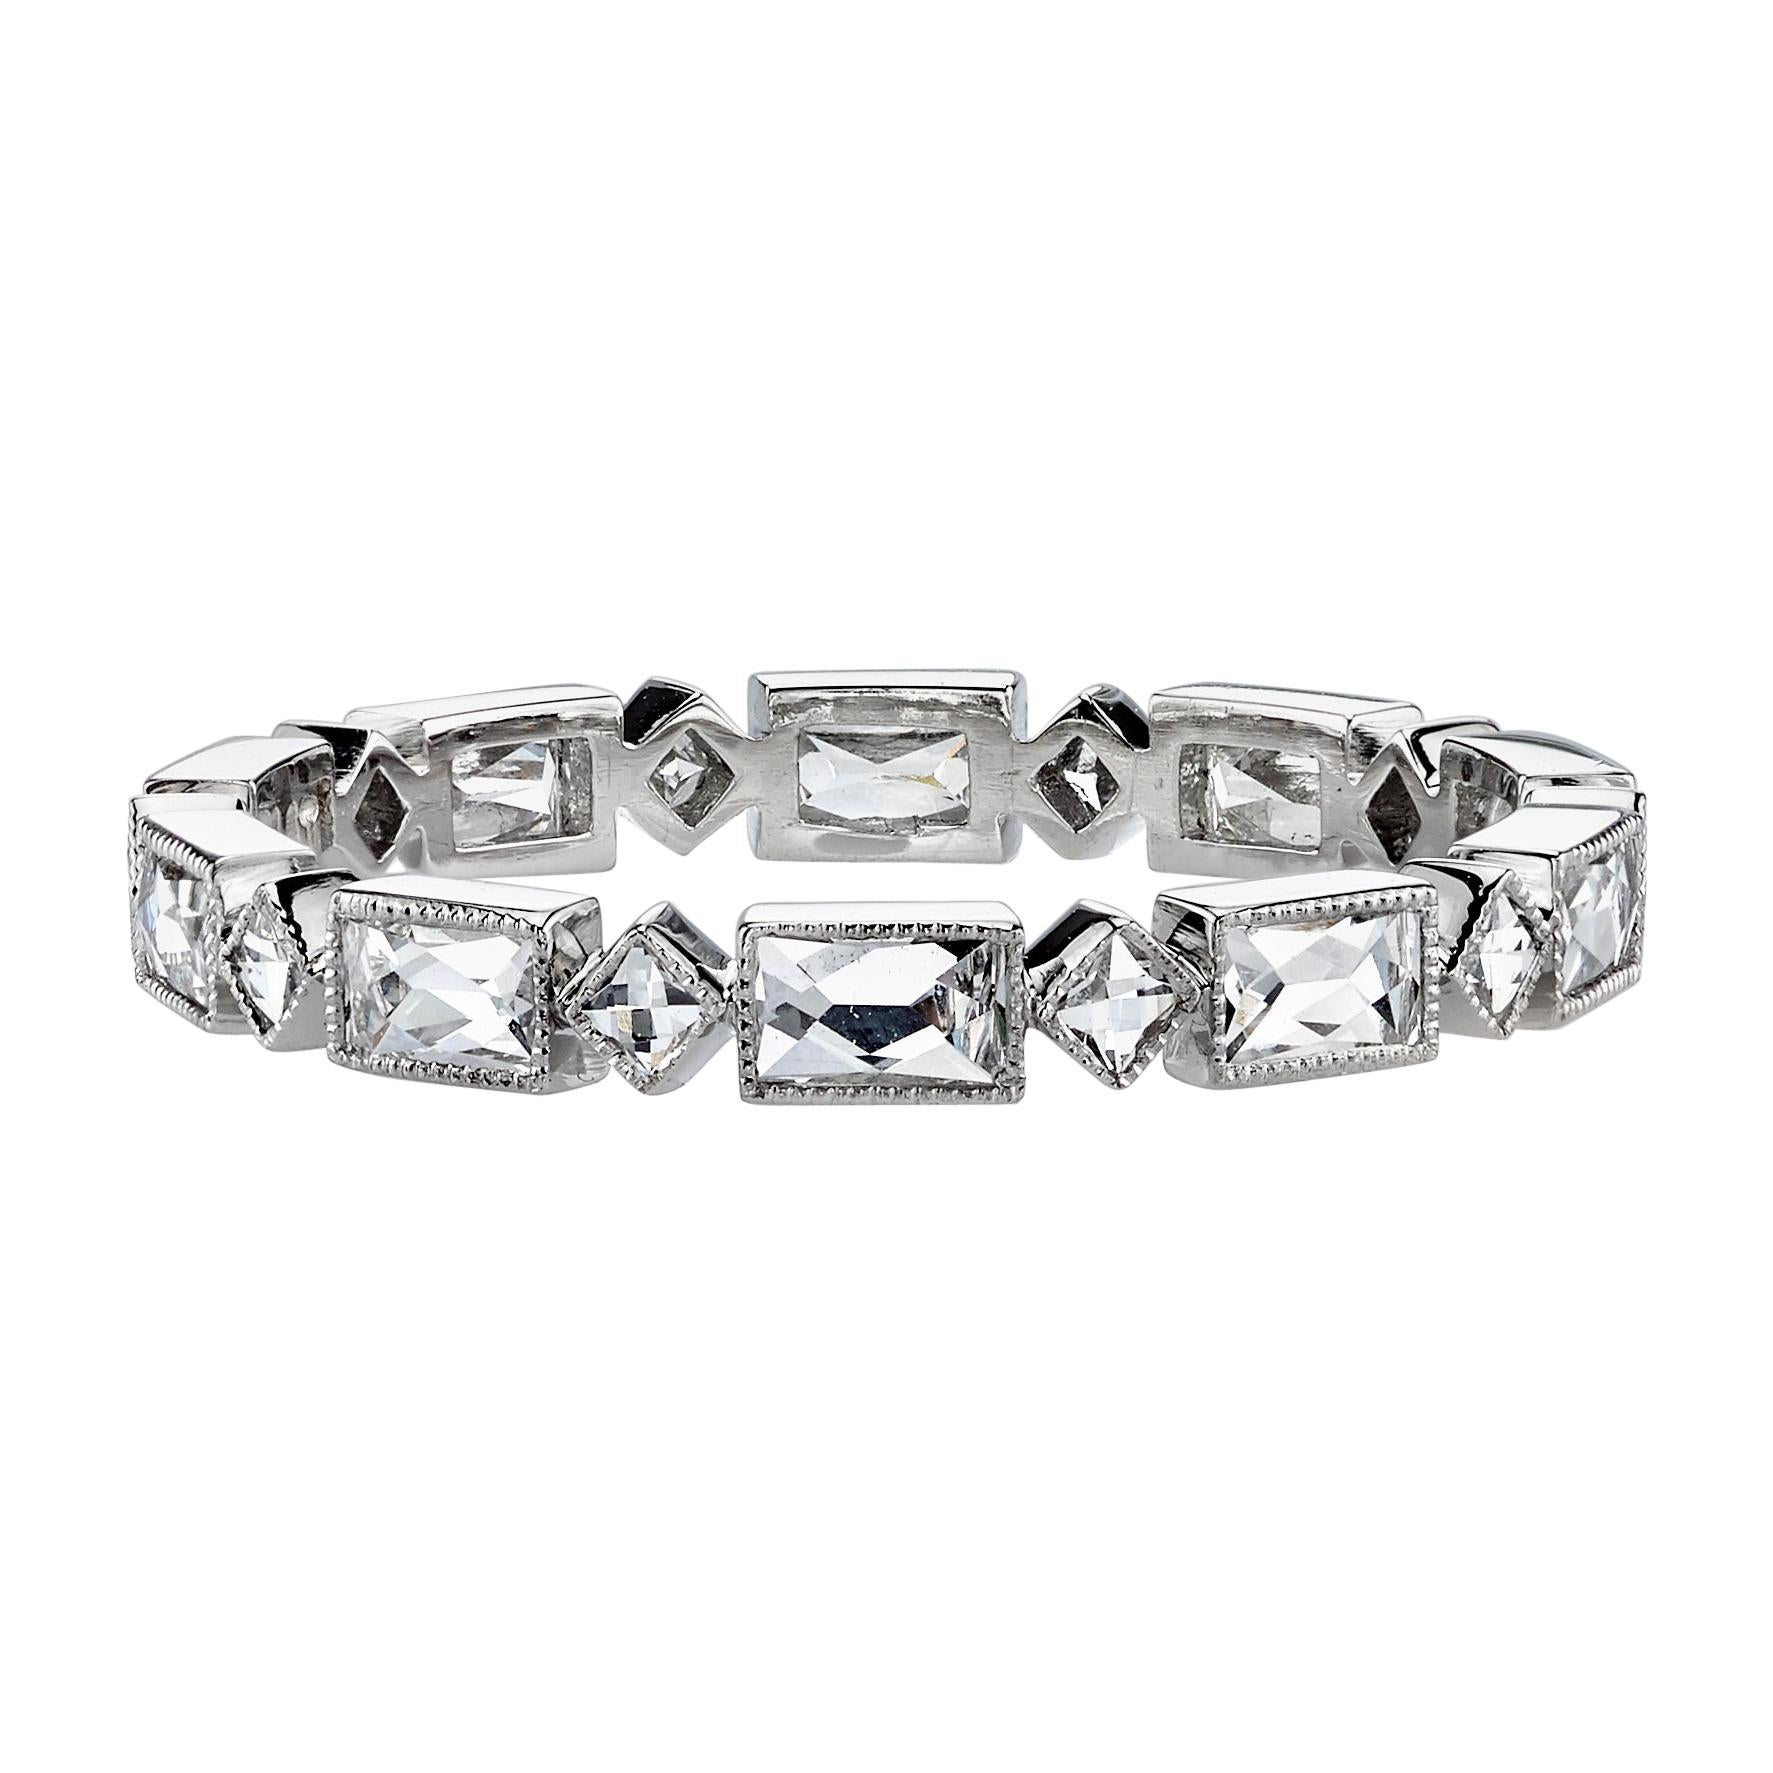 Approx. 1.00ctw French Cut Diamonds Set in a Handcrafted Platinum Eternity Band